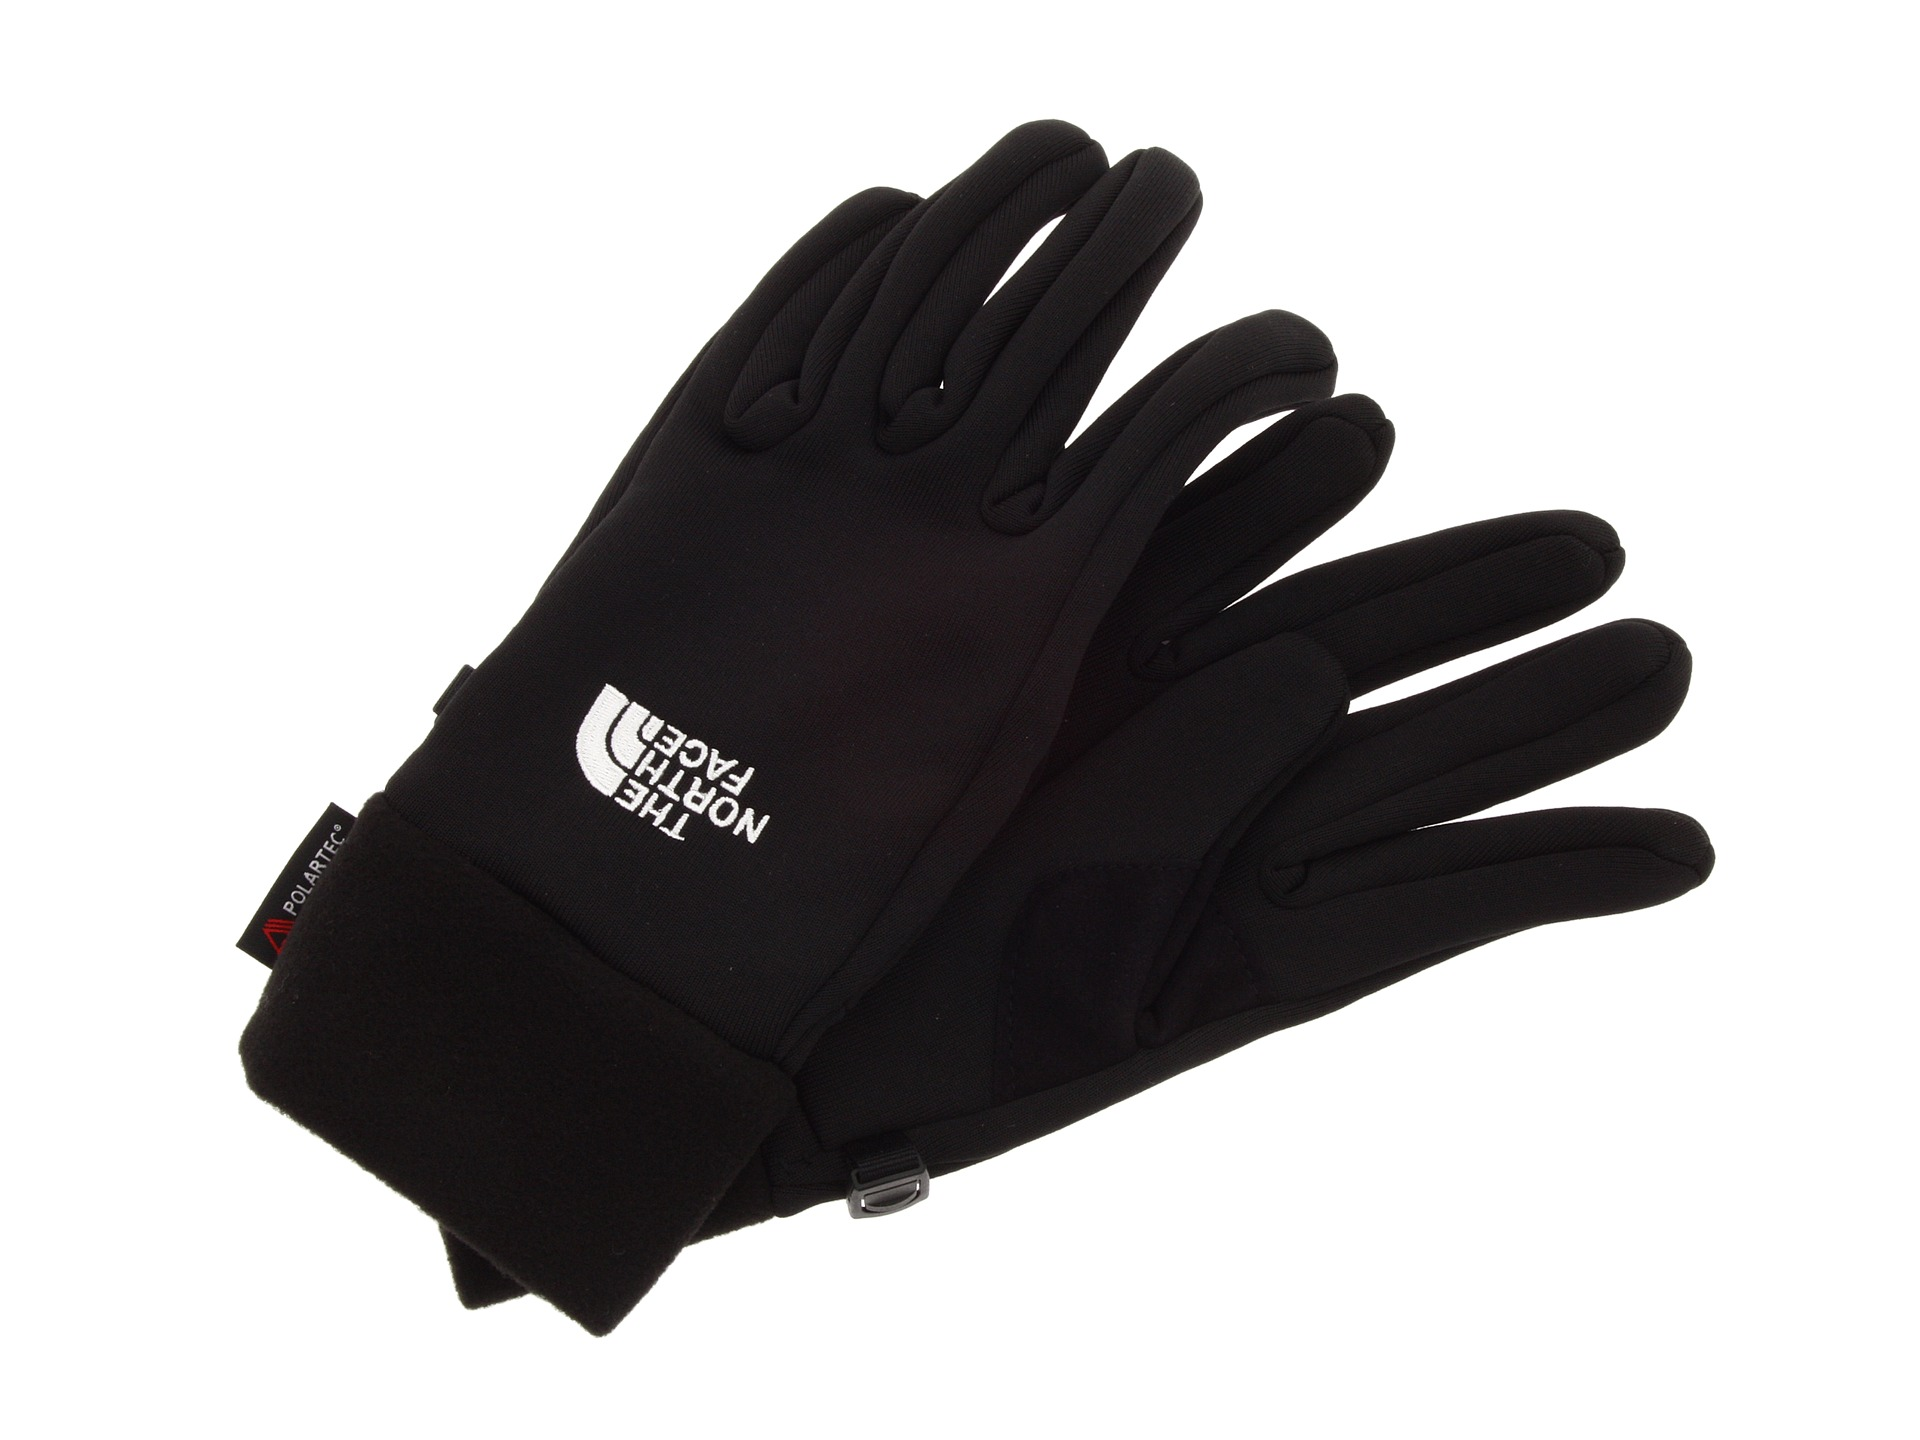 The North Face Women's Power Stretch Glove - Zappos.com Free Shipping BOTH Ways